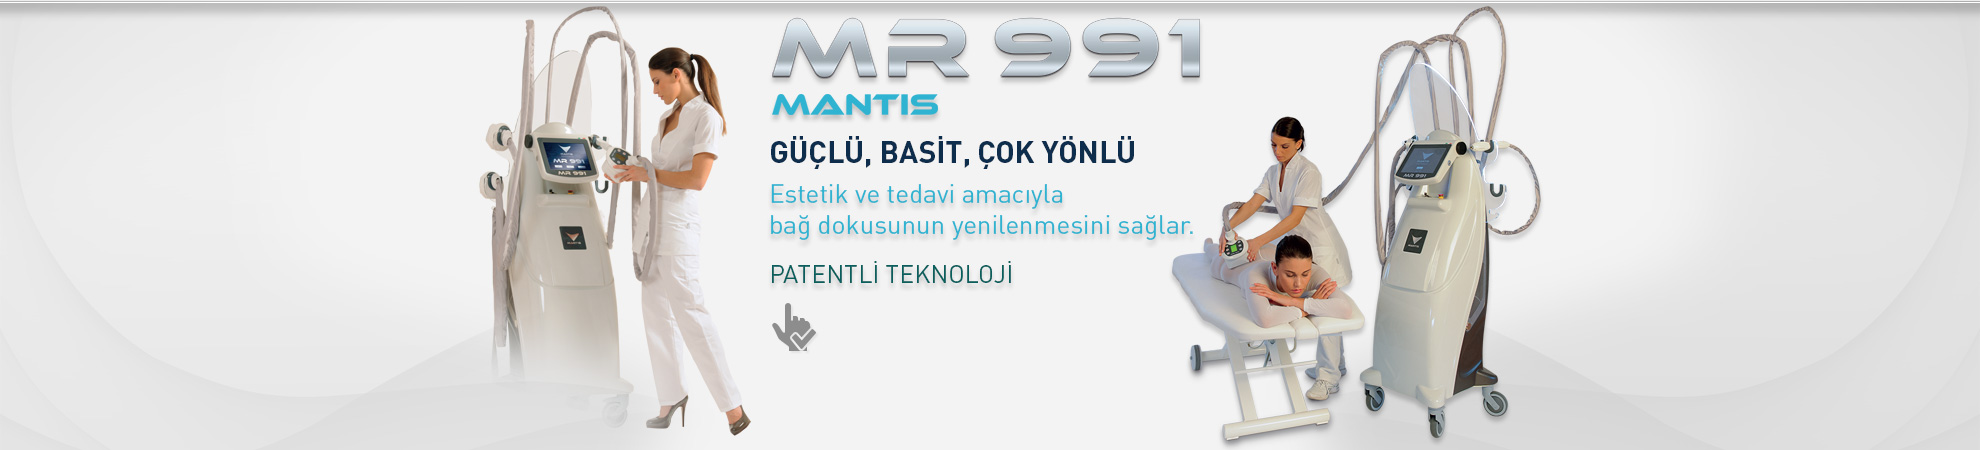 mantis-mr991